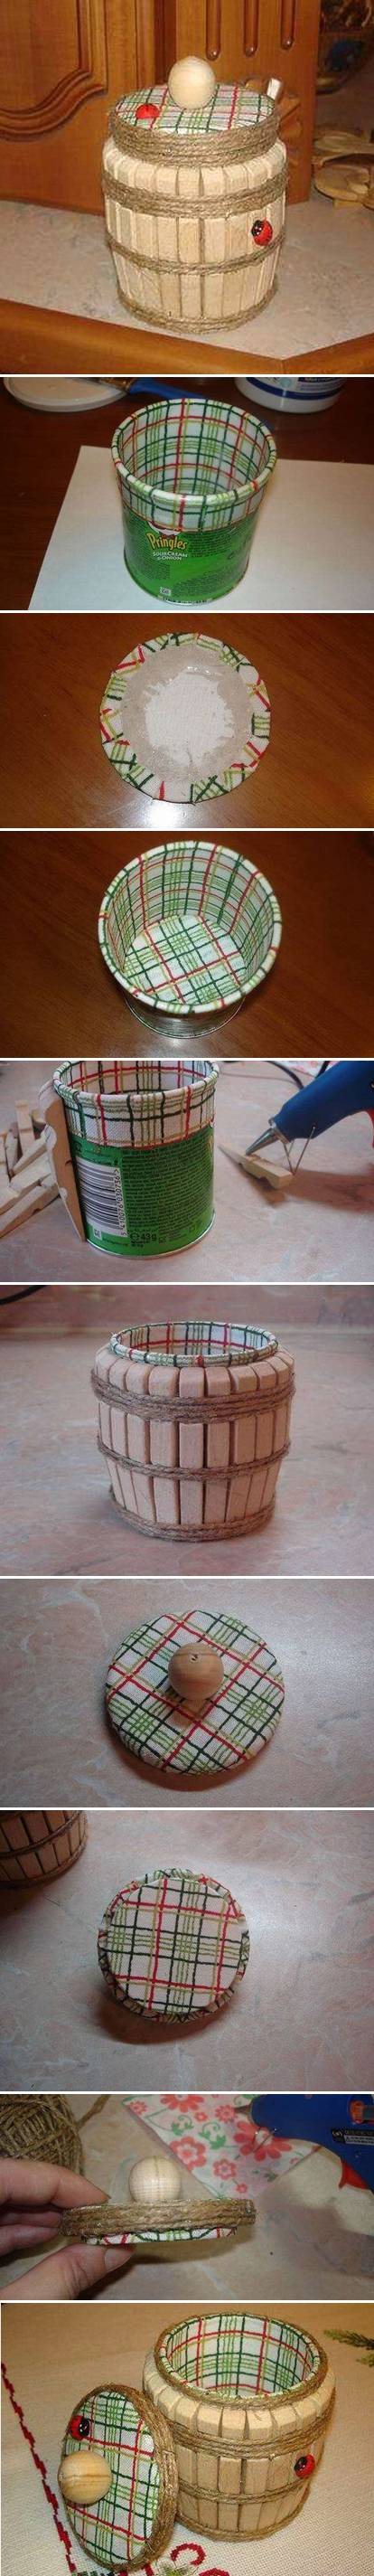 How To Make Clothespin Barrel step by step DIY tutorial instructions